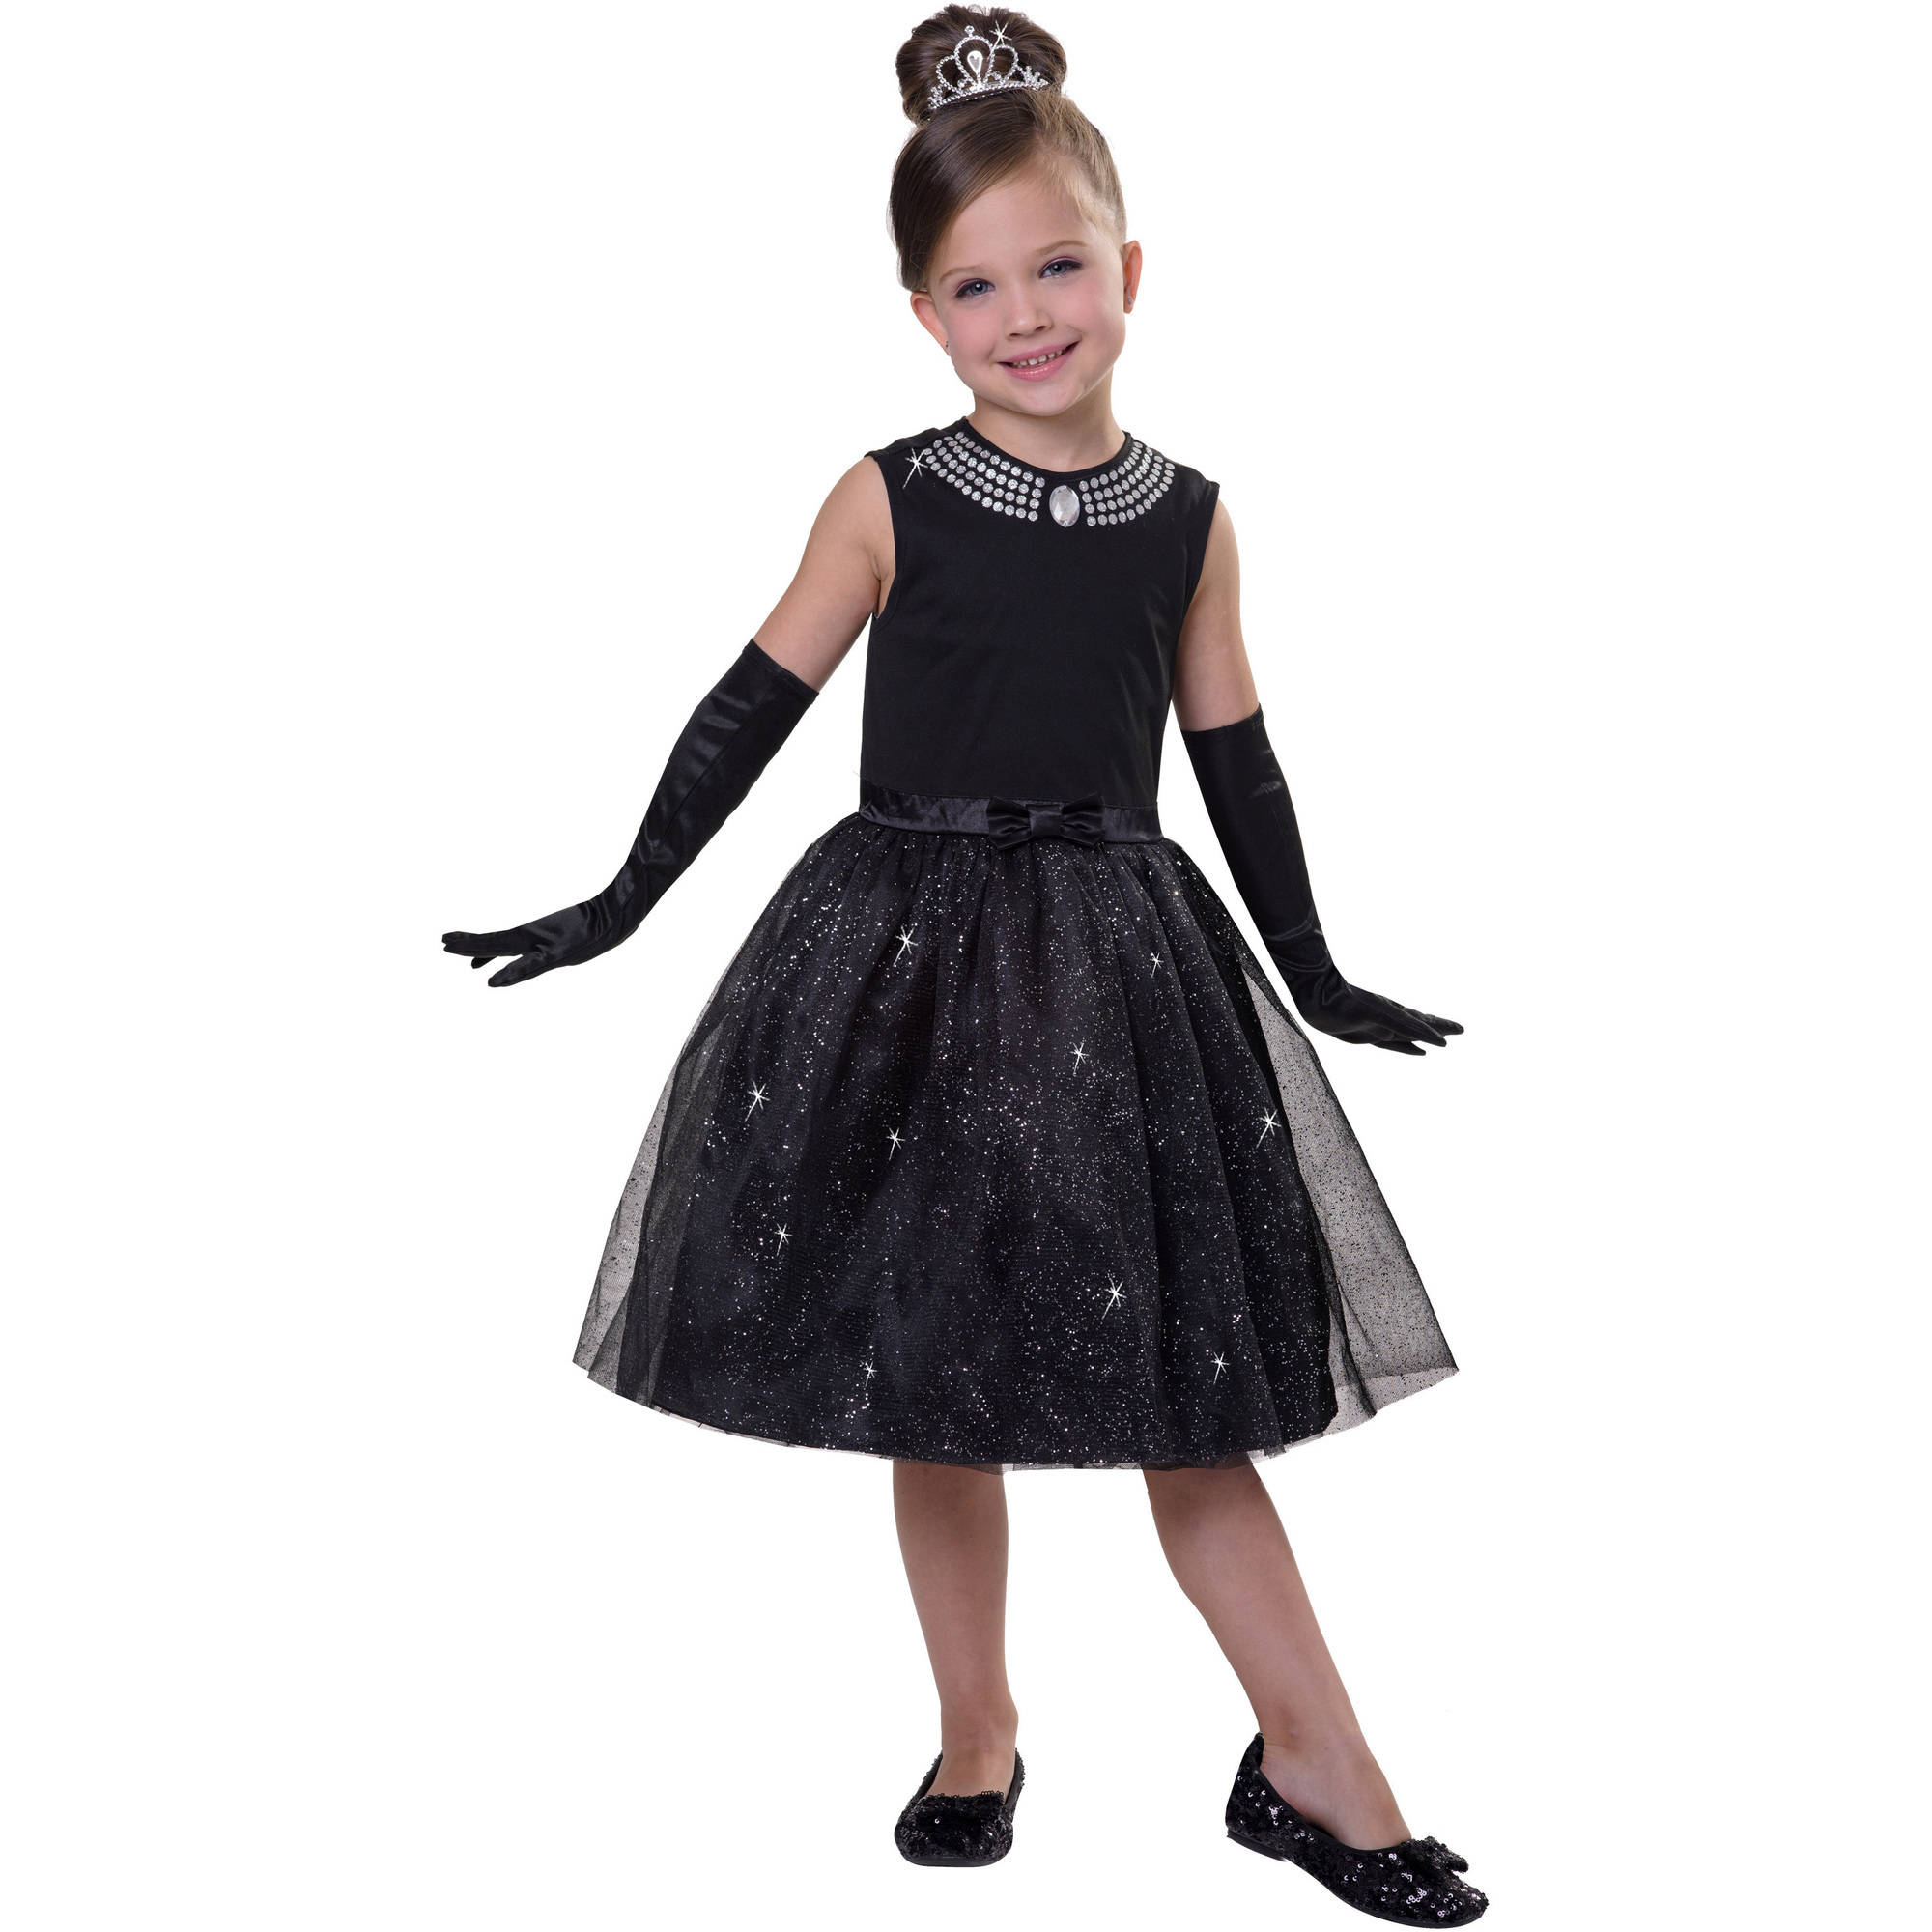 Movie Star Child Halloween Costume